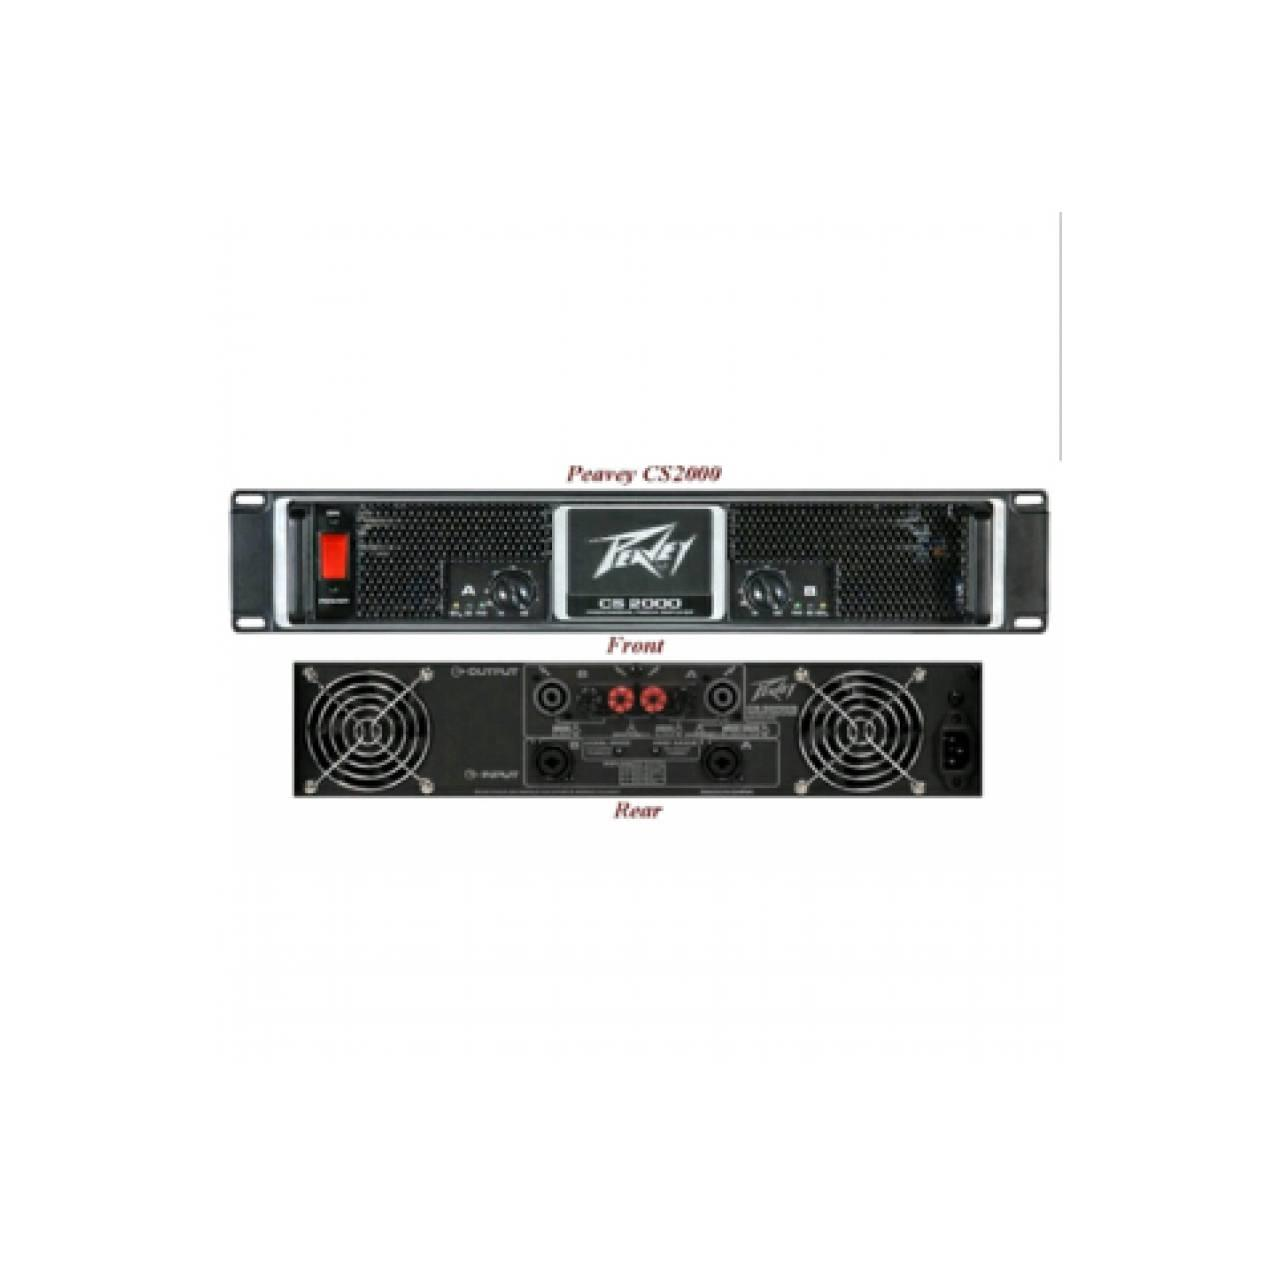 Murah !!! Power Ampli Fier Peavey Cs 2000